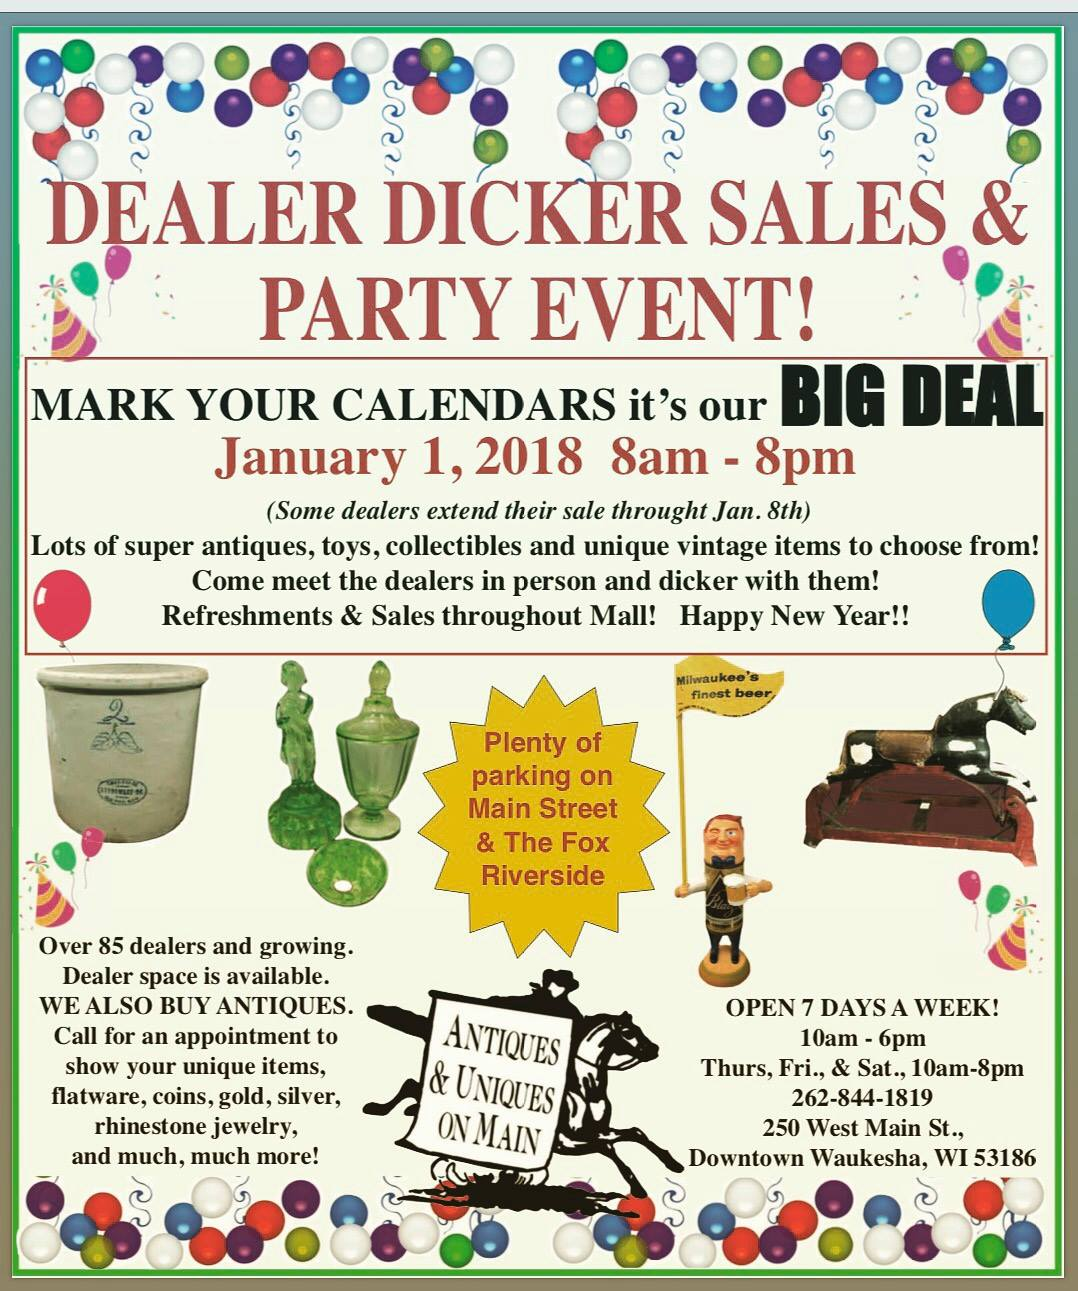 Dealer Dicker Day Waukesha Antiques & Uniques on Main